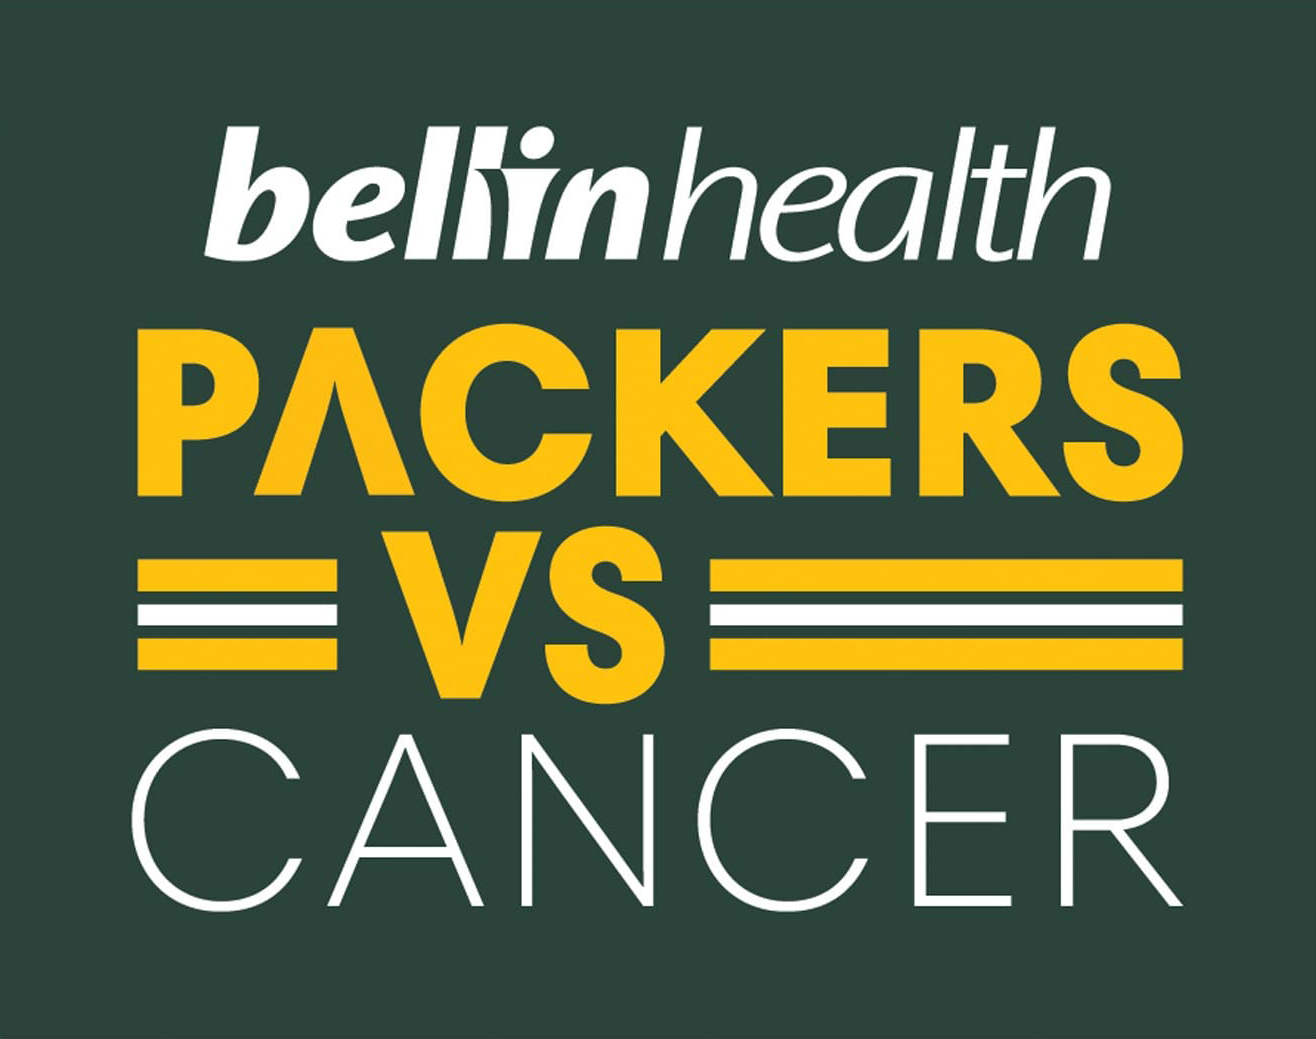 PACKERS vs. CANCER